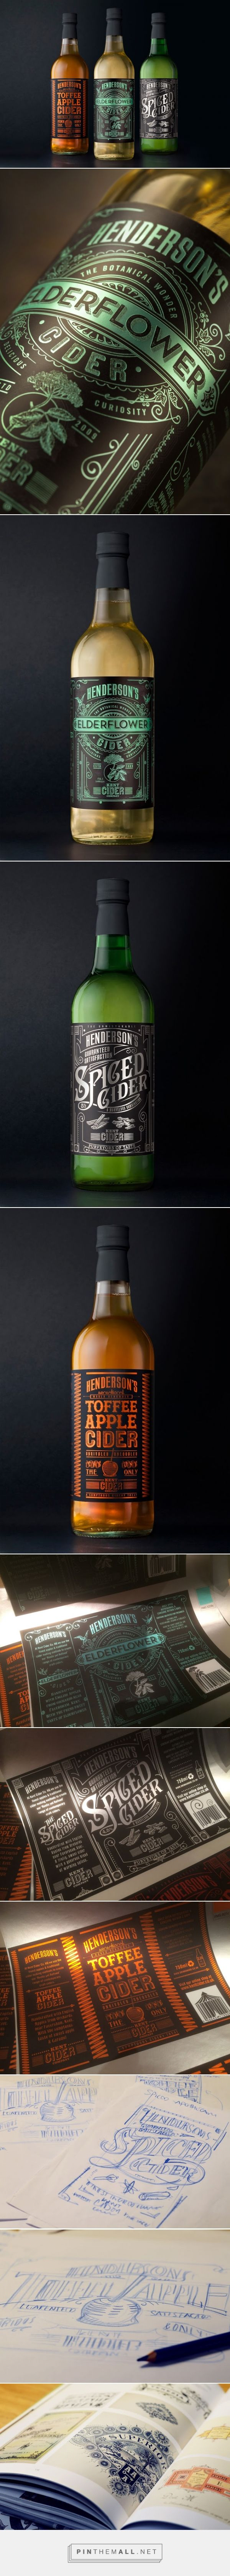 Henderson's #Cider #Packaging designed by Sand Creative